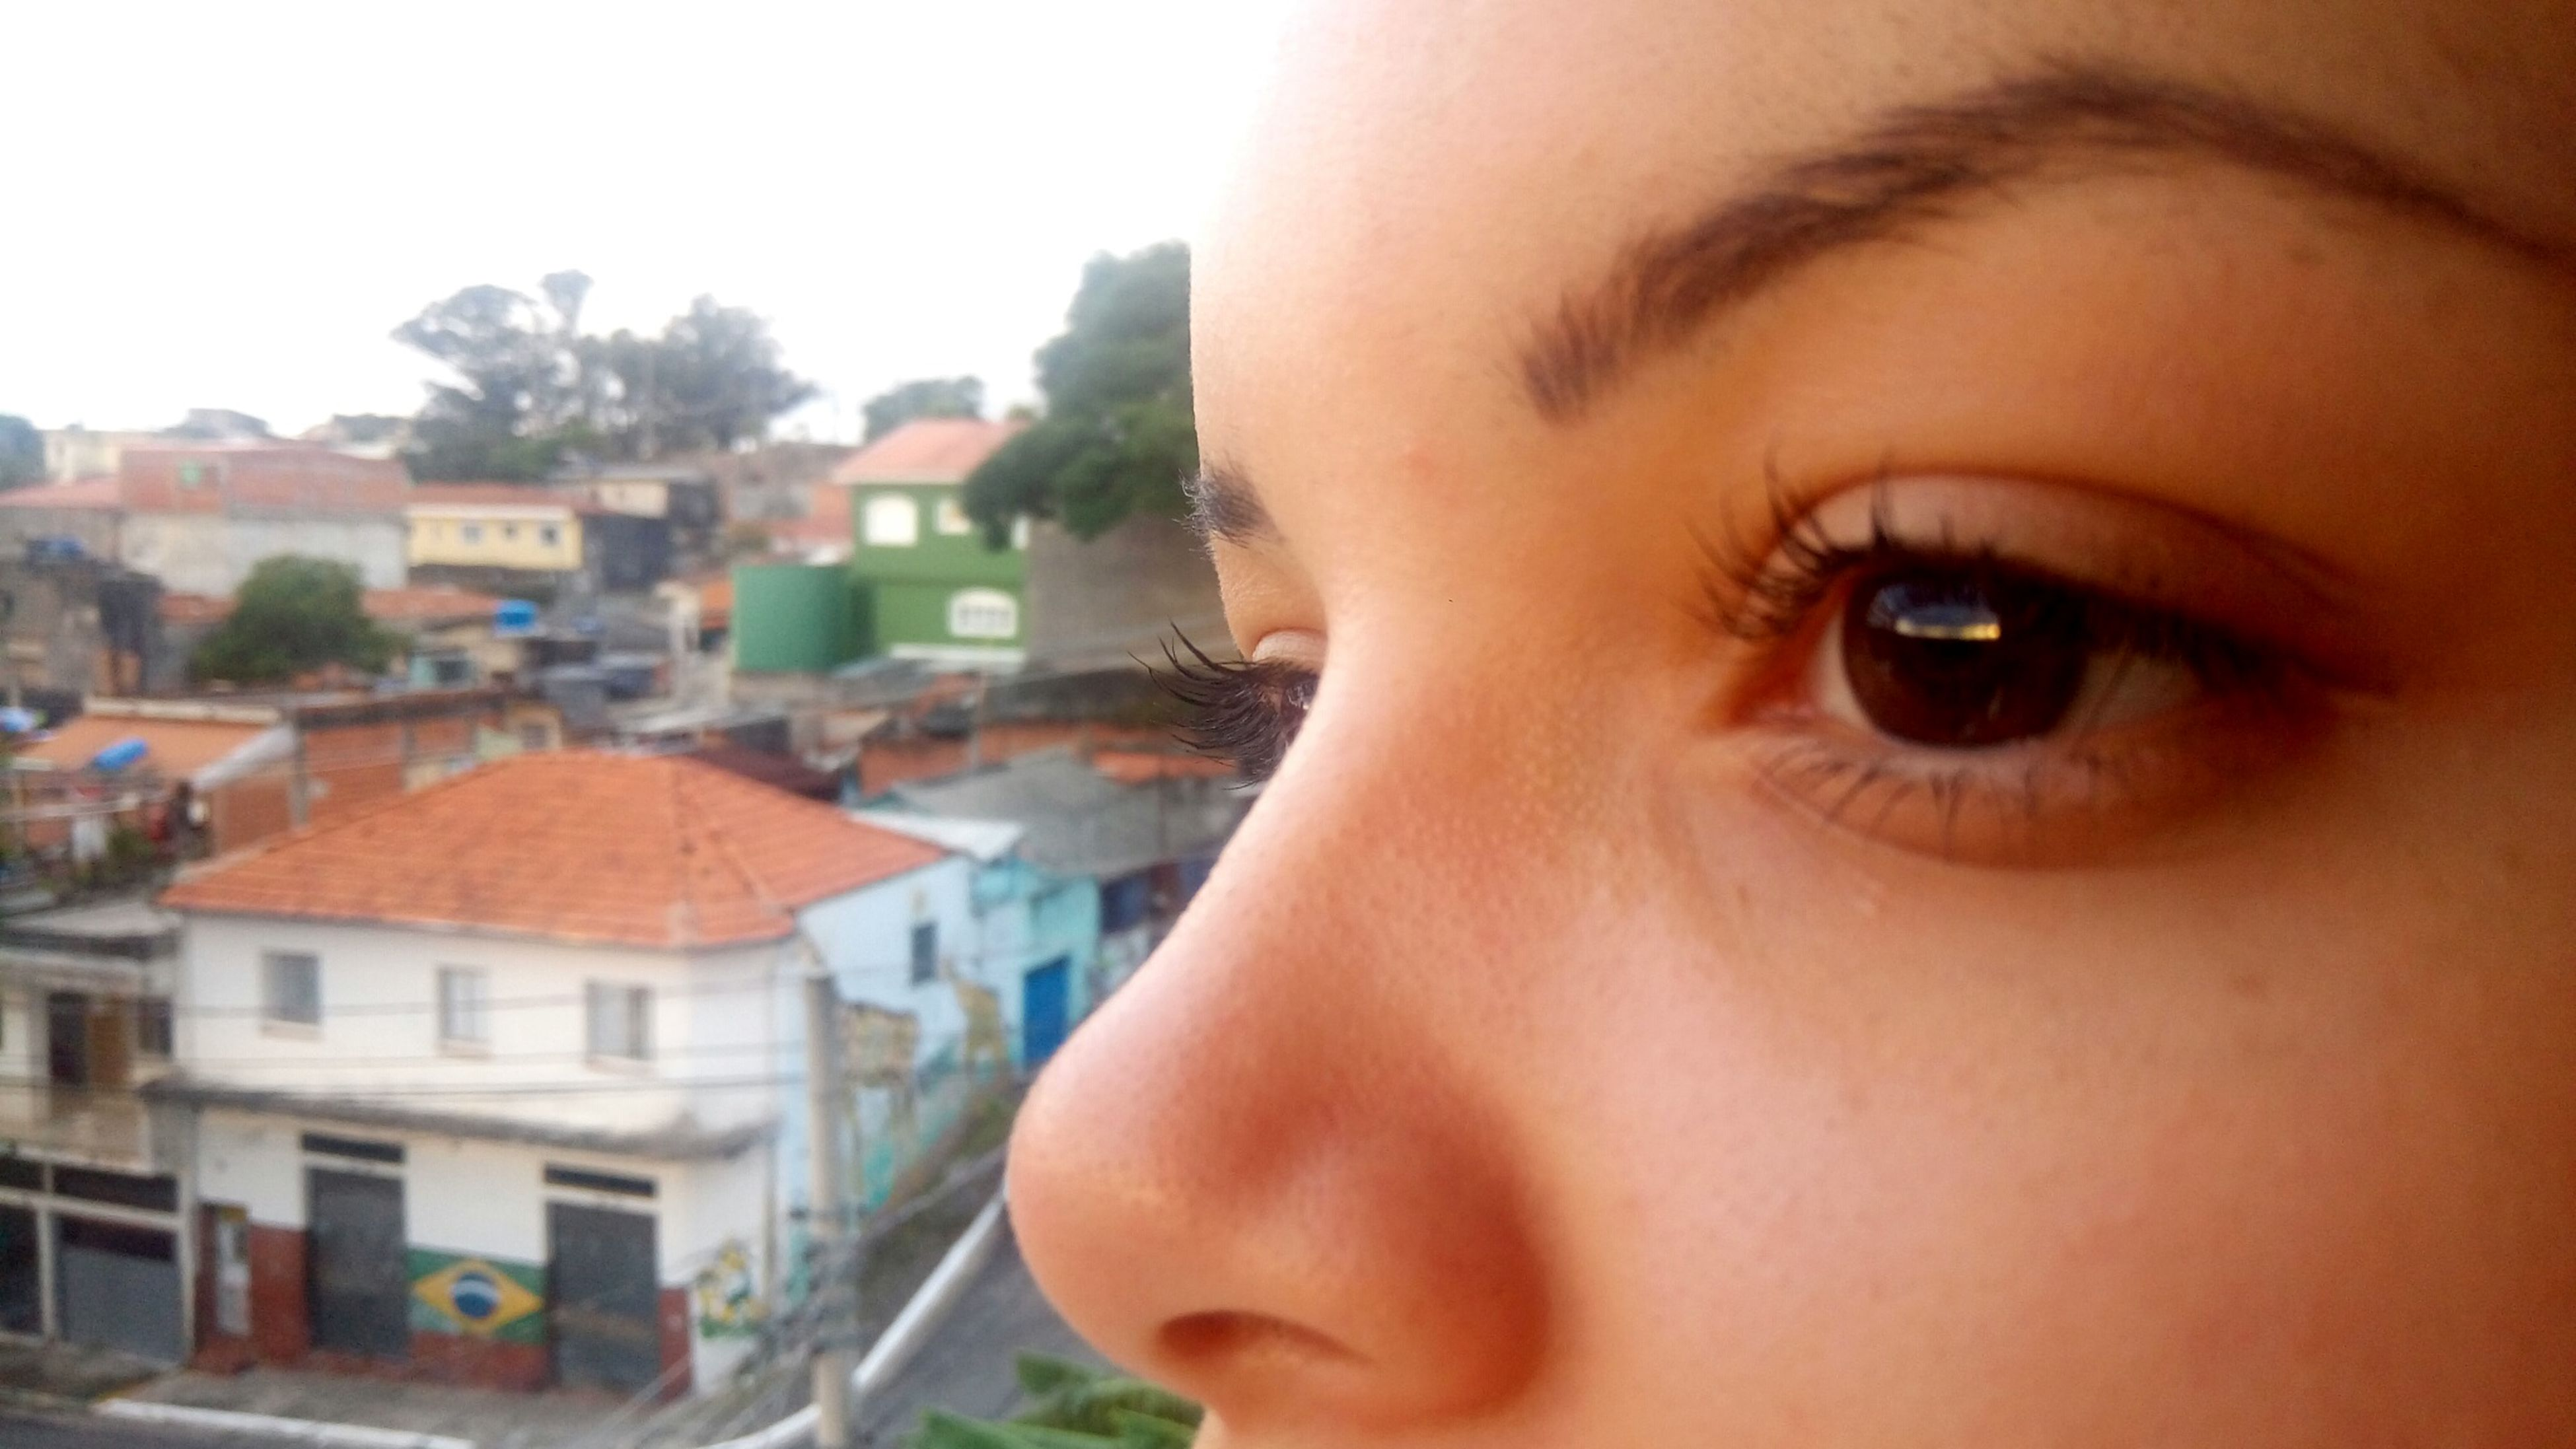 real people, human face, one person, close-up, beautiful woman, lifestyles, outdoors, building exterior, women, young women, portrait, day, beauty, young adult, eyelash, city, mascara, architecture, human eye, sky